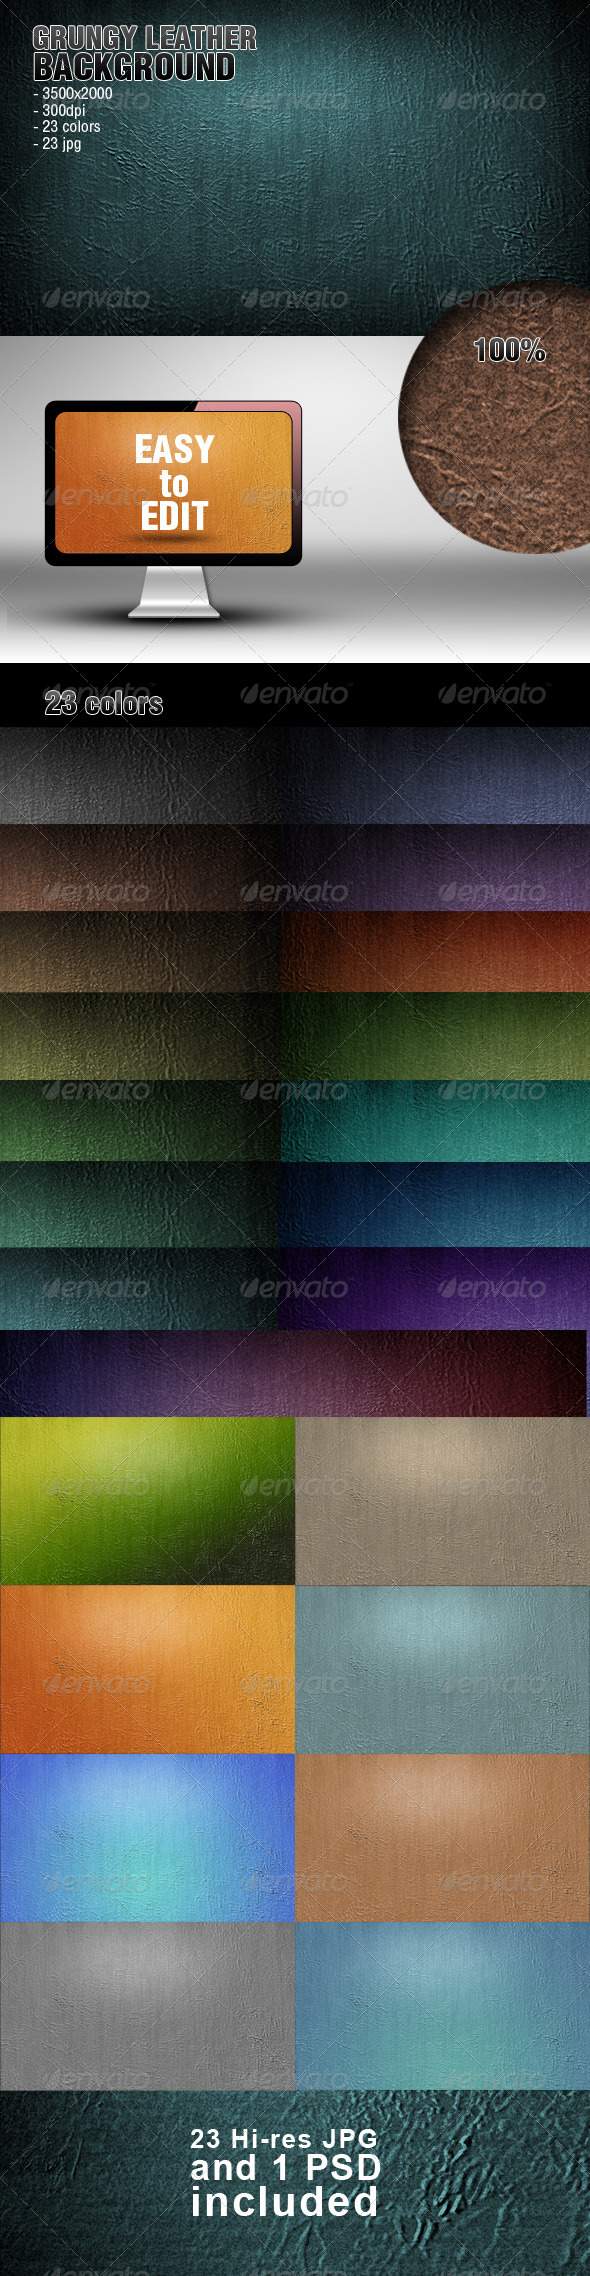 Grungy Leather Background - Abstract Backgrounds